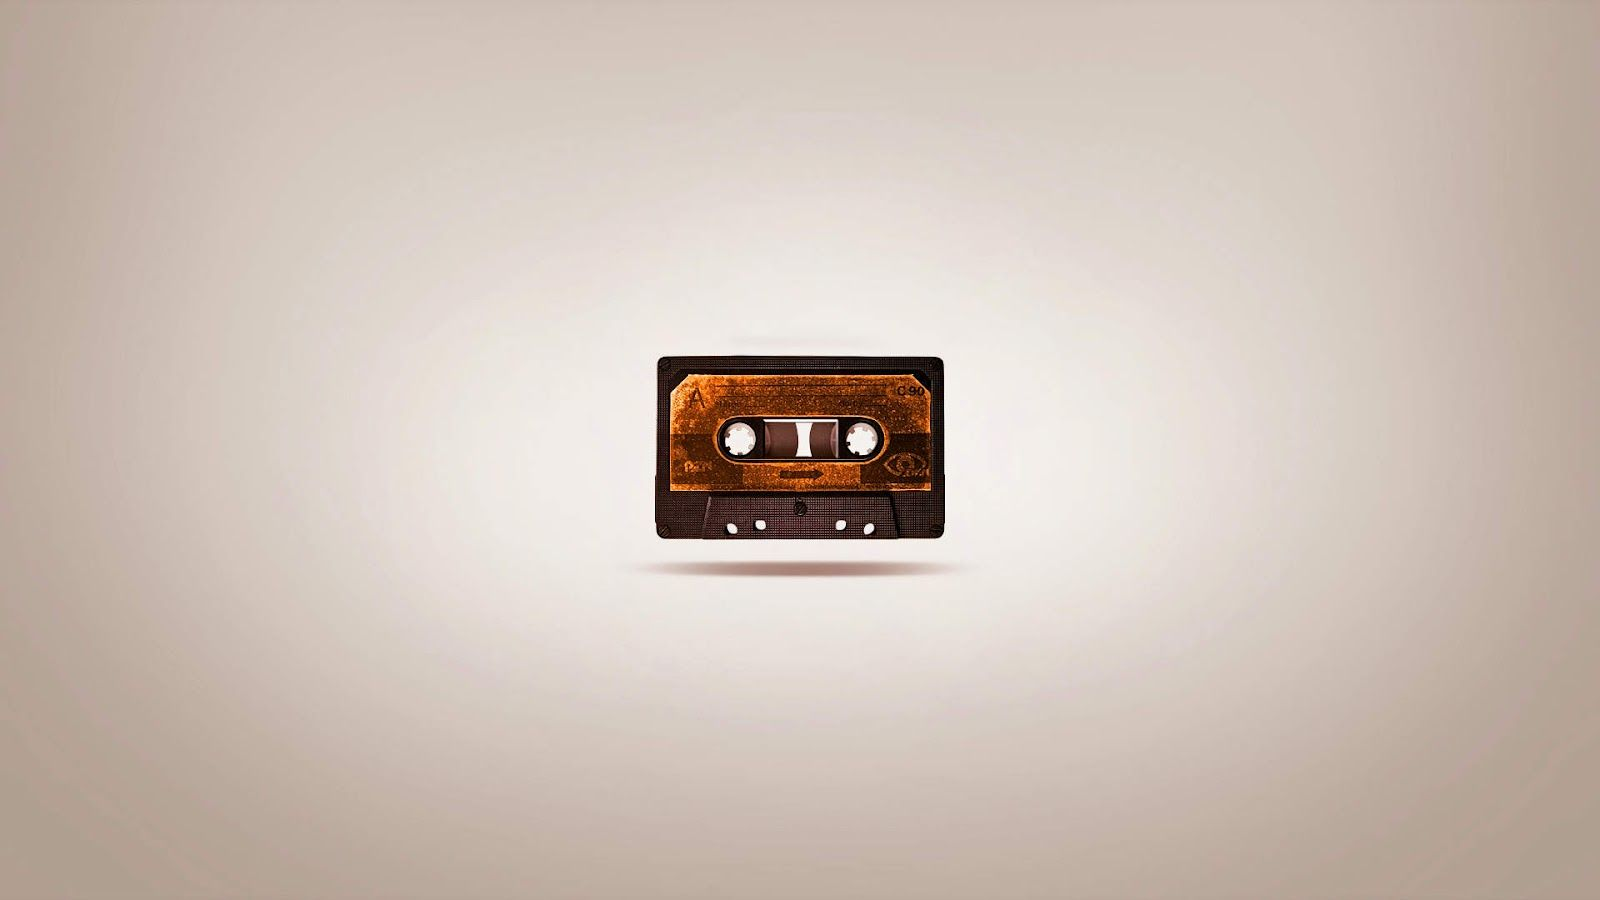 1600x900 Best 44+ Cassette Tape Wallpaper on HipWallpaper | Cassette ...